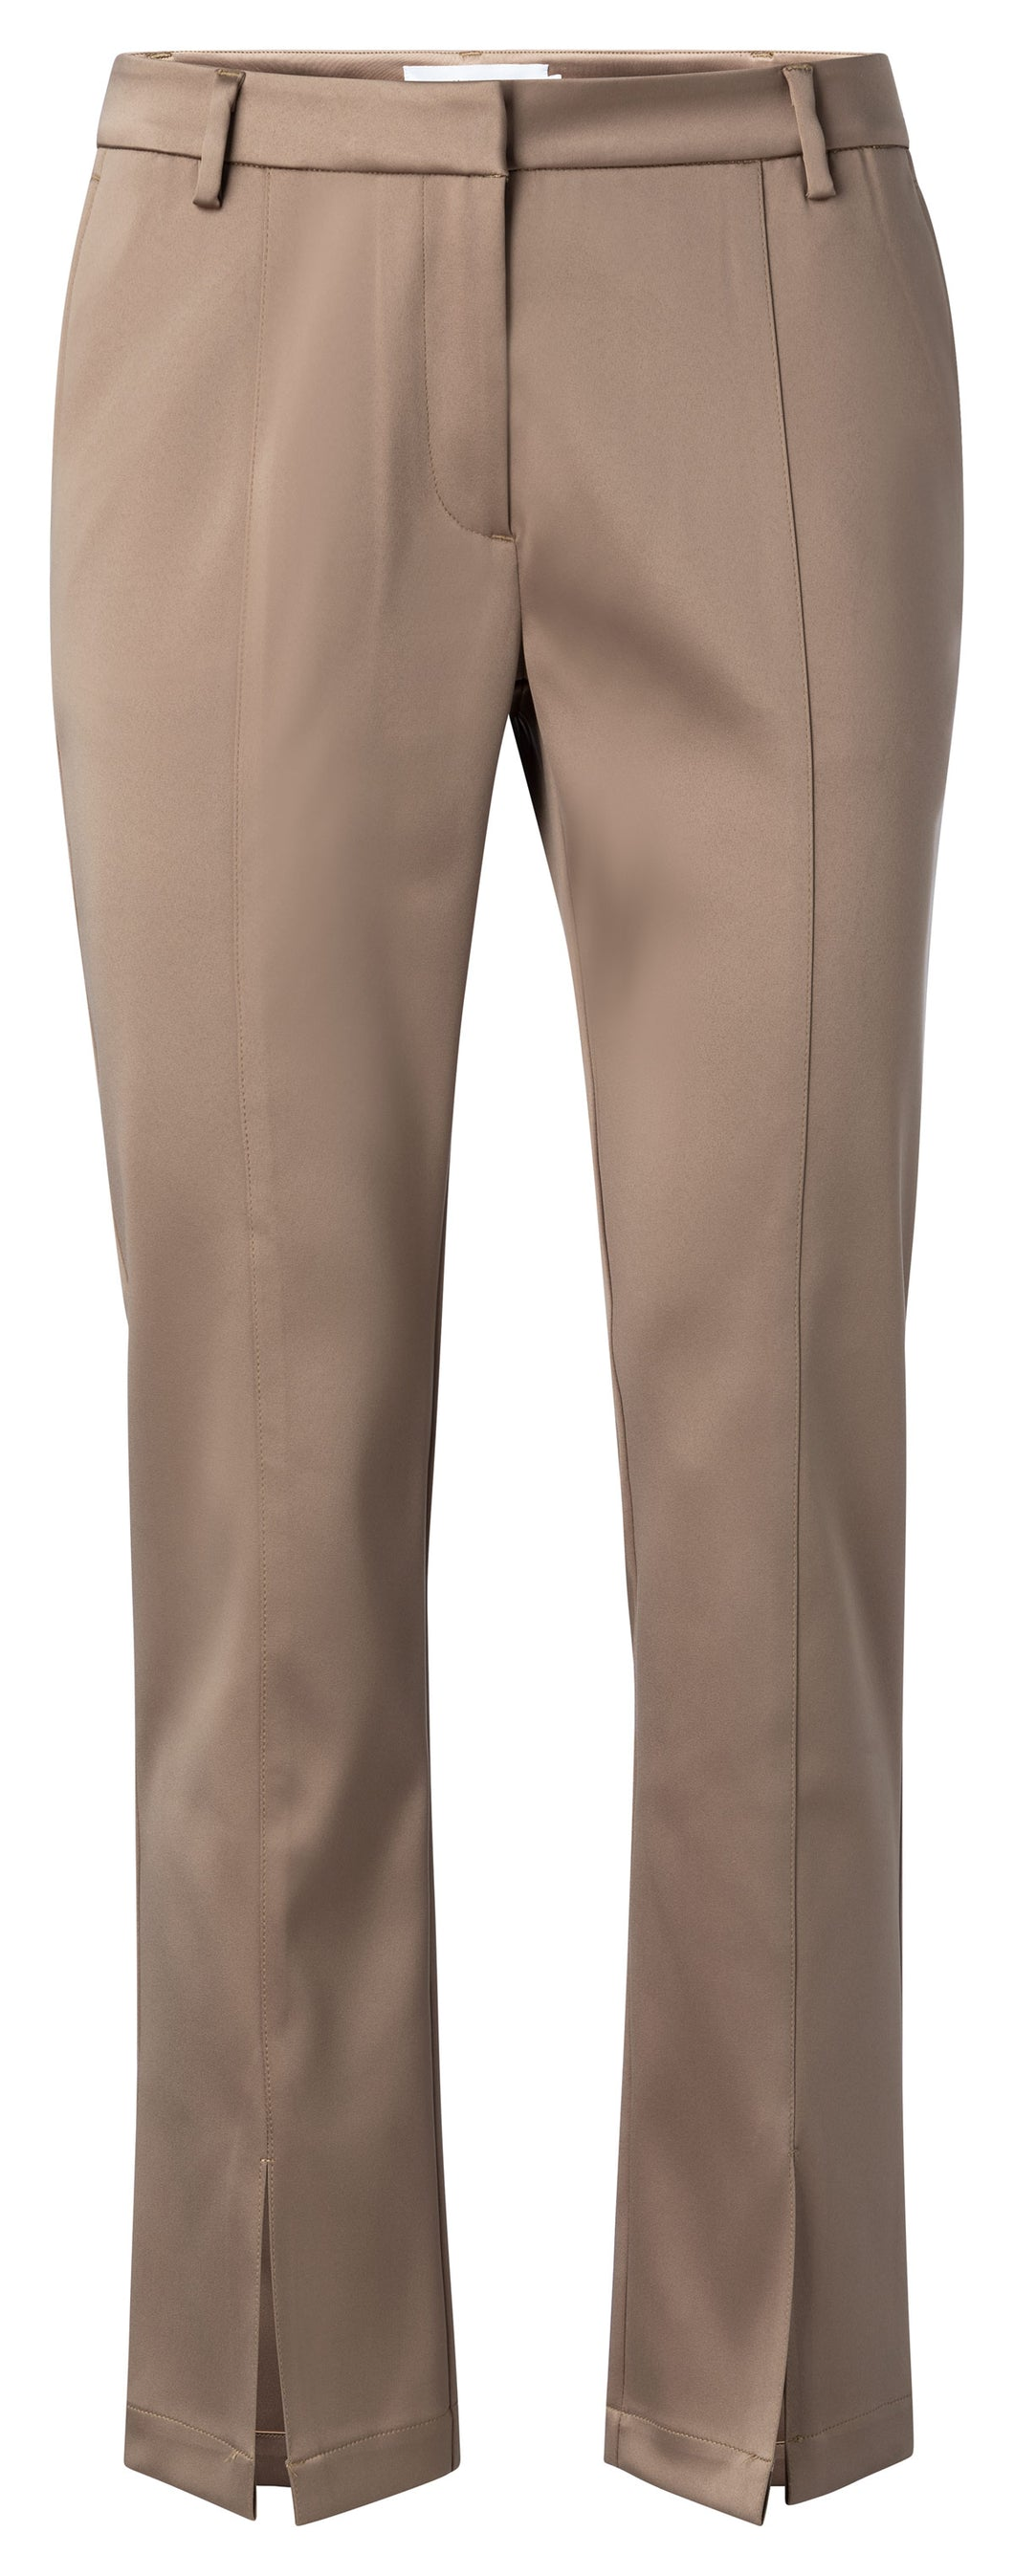 YAYA SATIN STRETCH PANTALON WITH SLITS